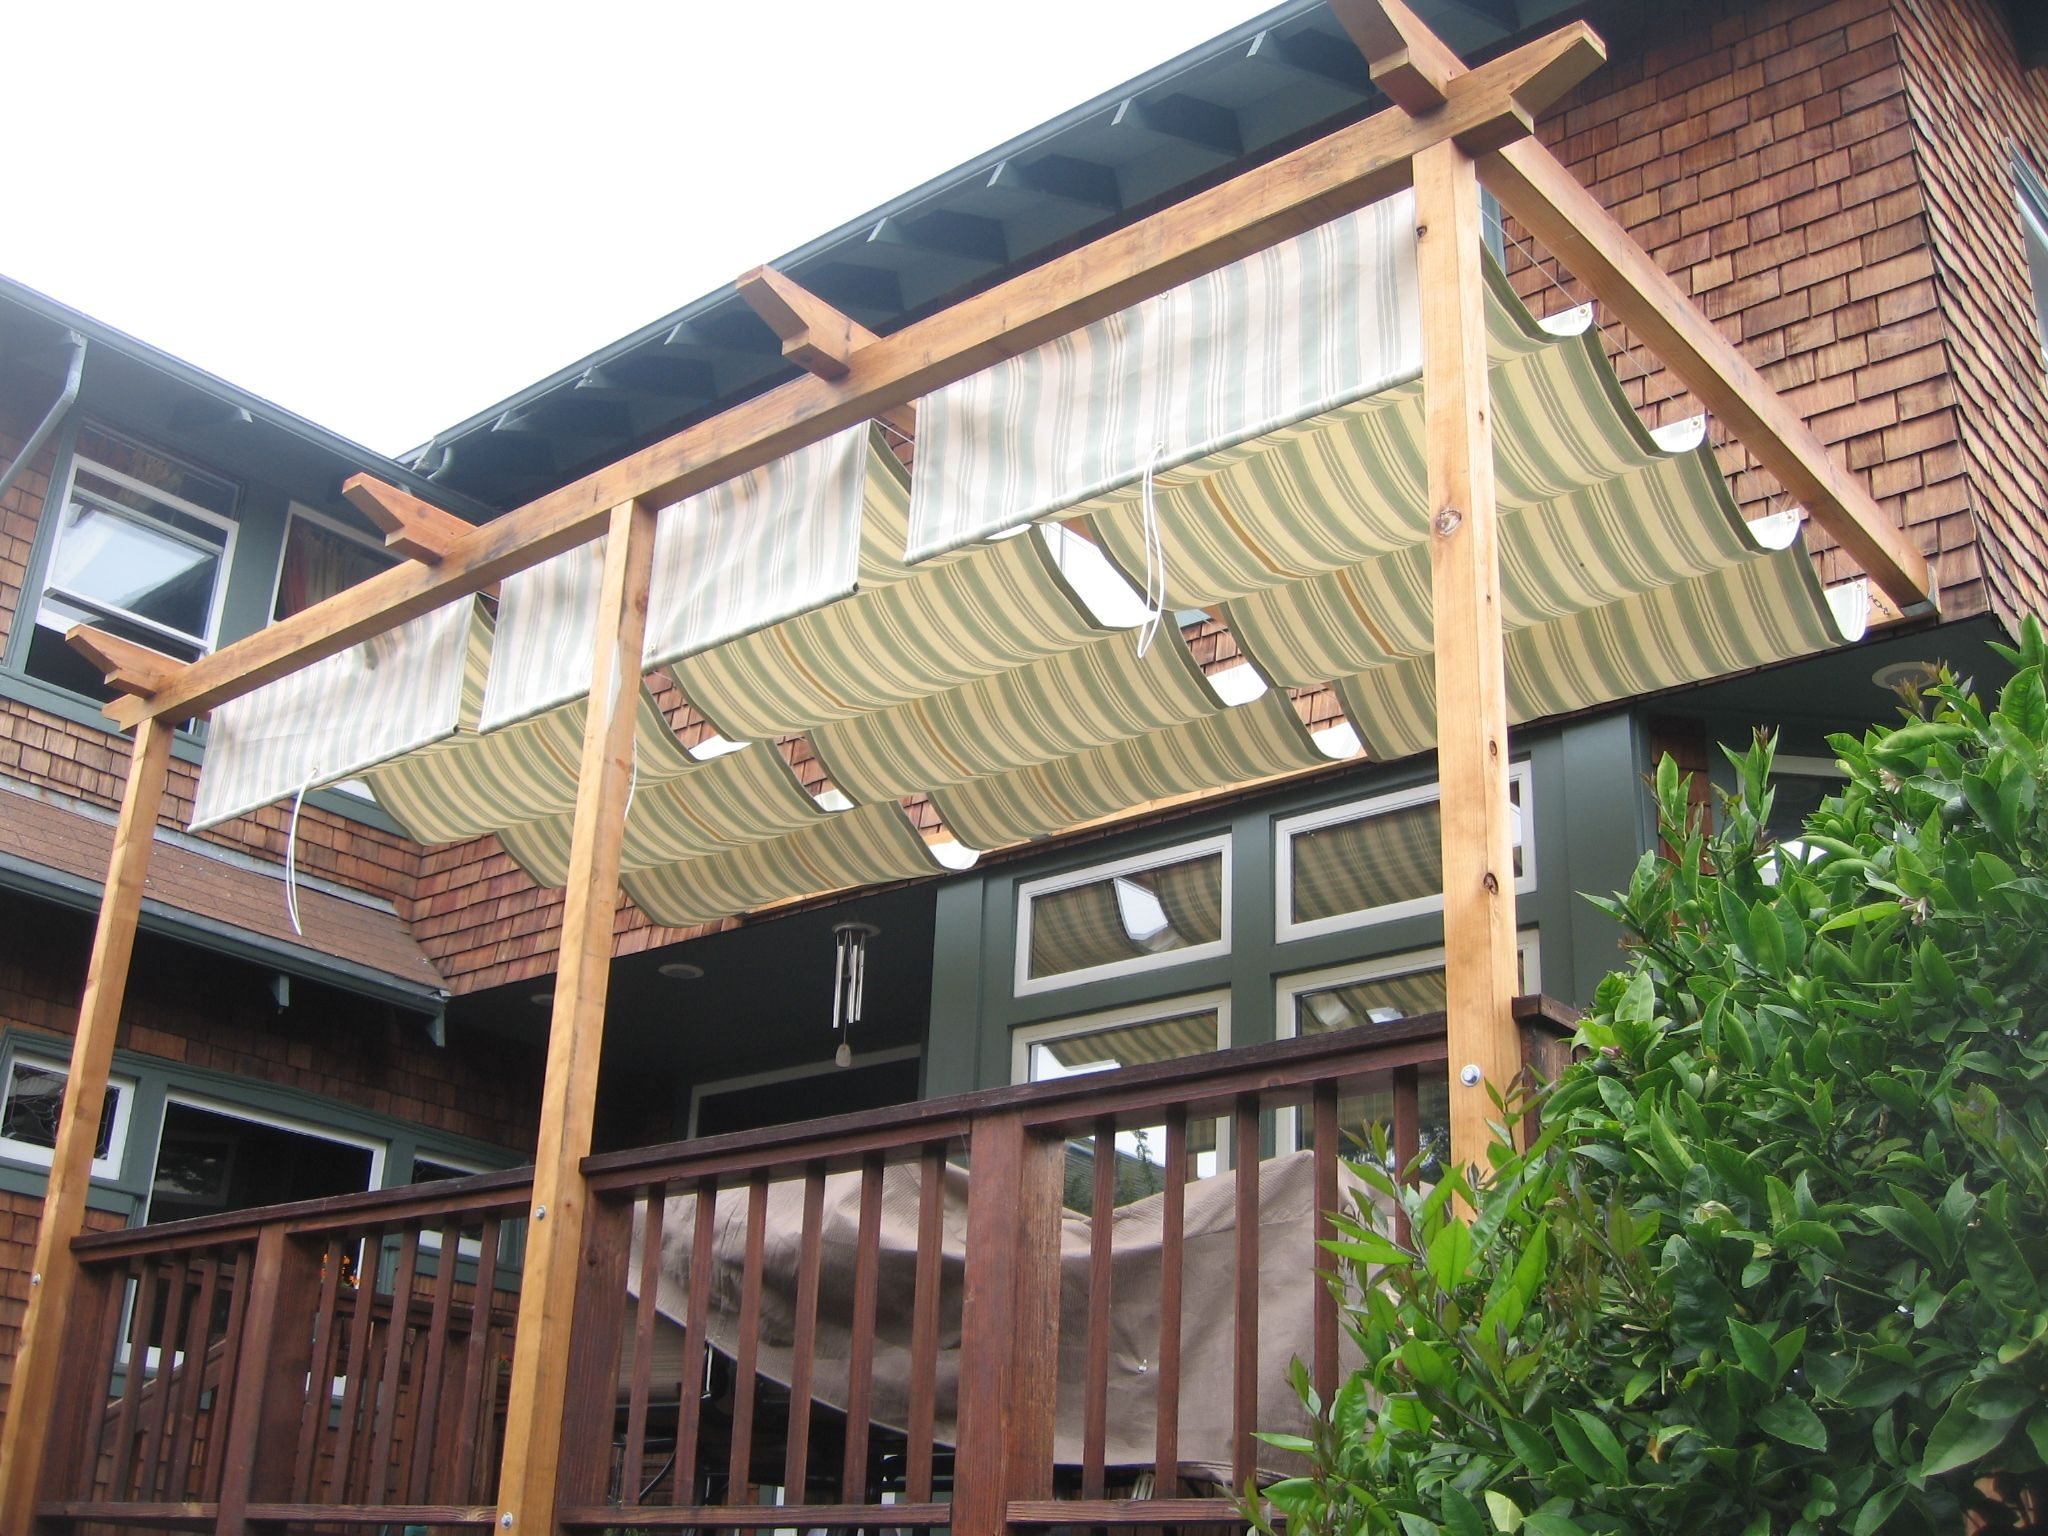 awning building and deck arbors sunrooms structures backyard decks